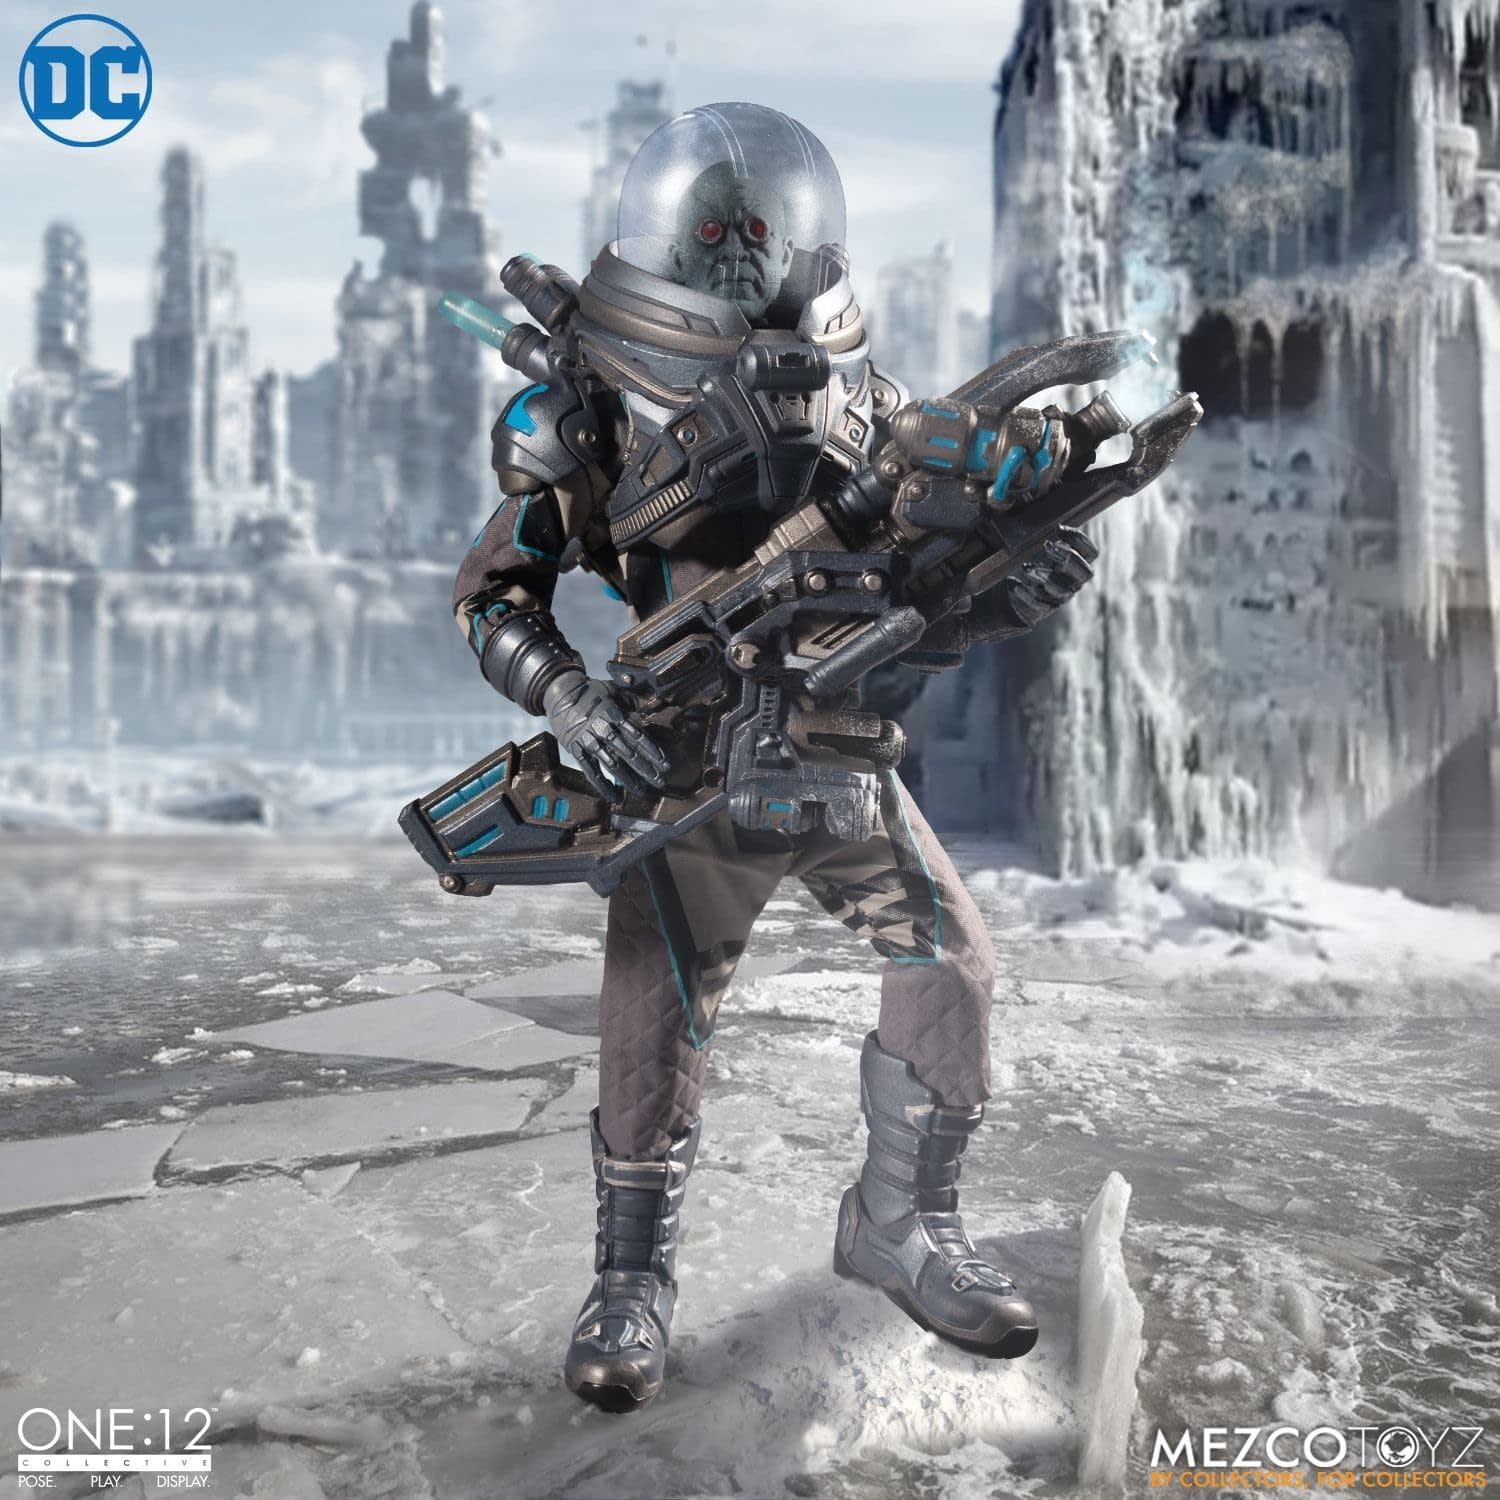 Mr. Freeze Brings the Ice Age with New One:12 Mezco Toyz